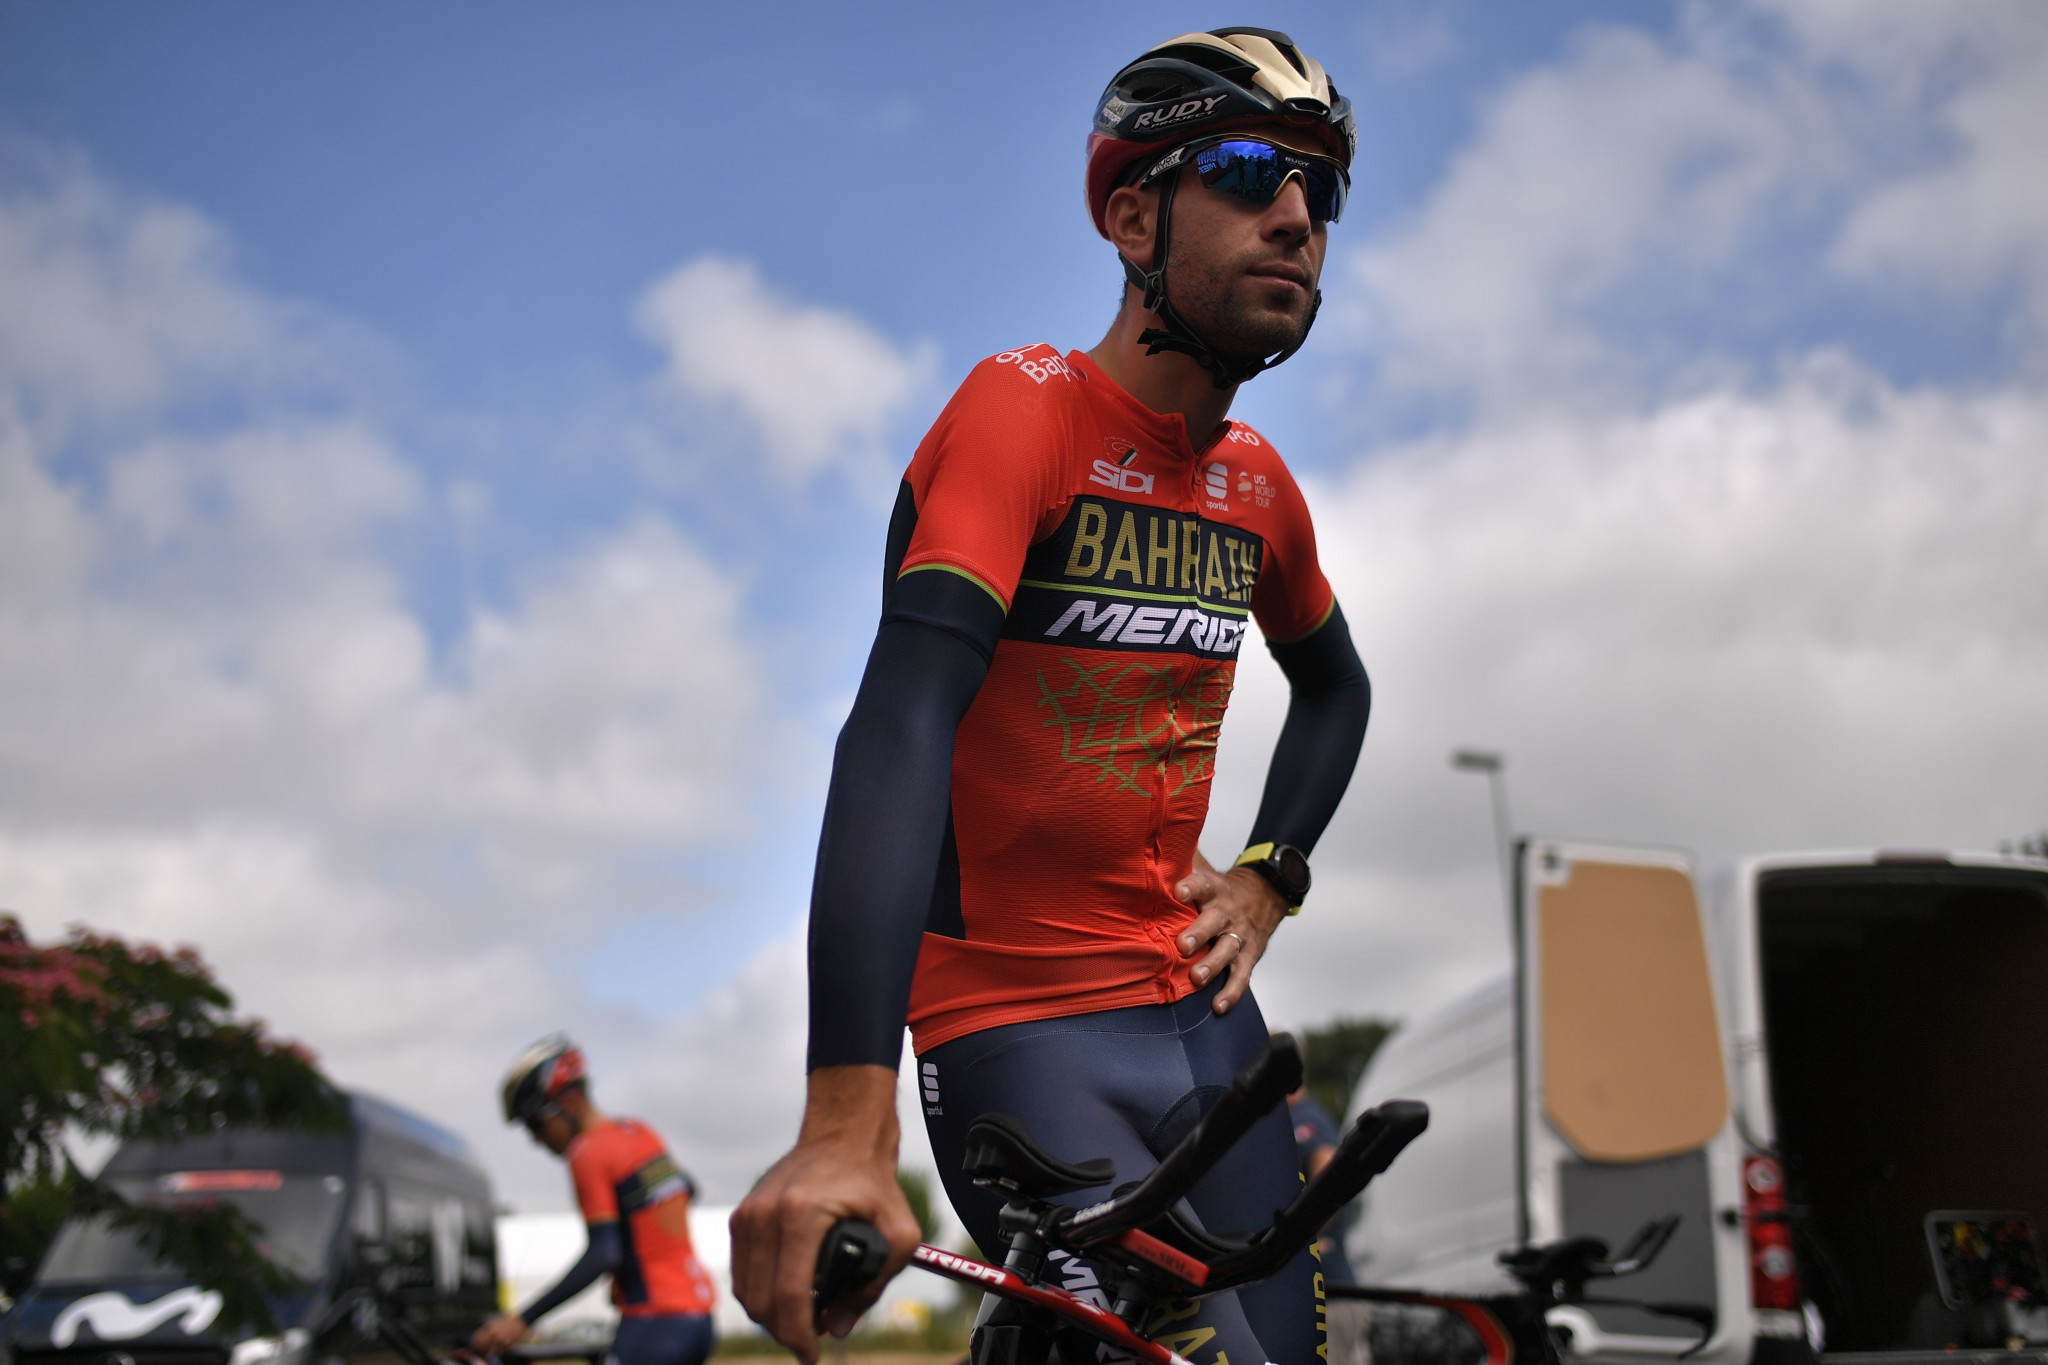 Italy's Vincenzo Nibali could contend for the general classification at the Tour de France ©Getty Images